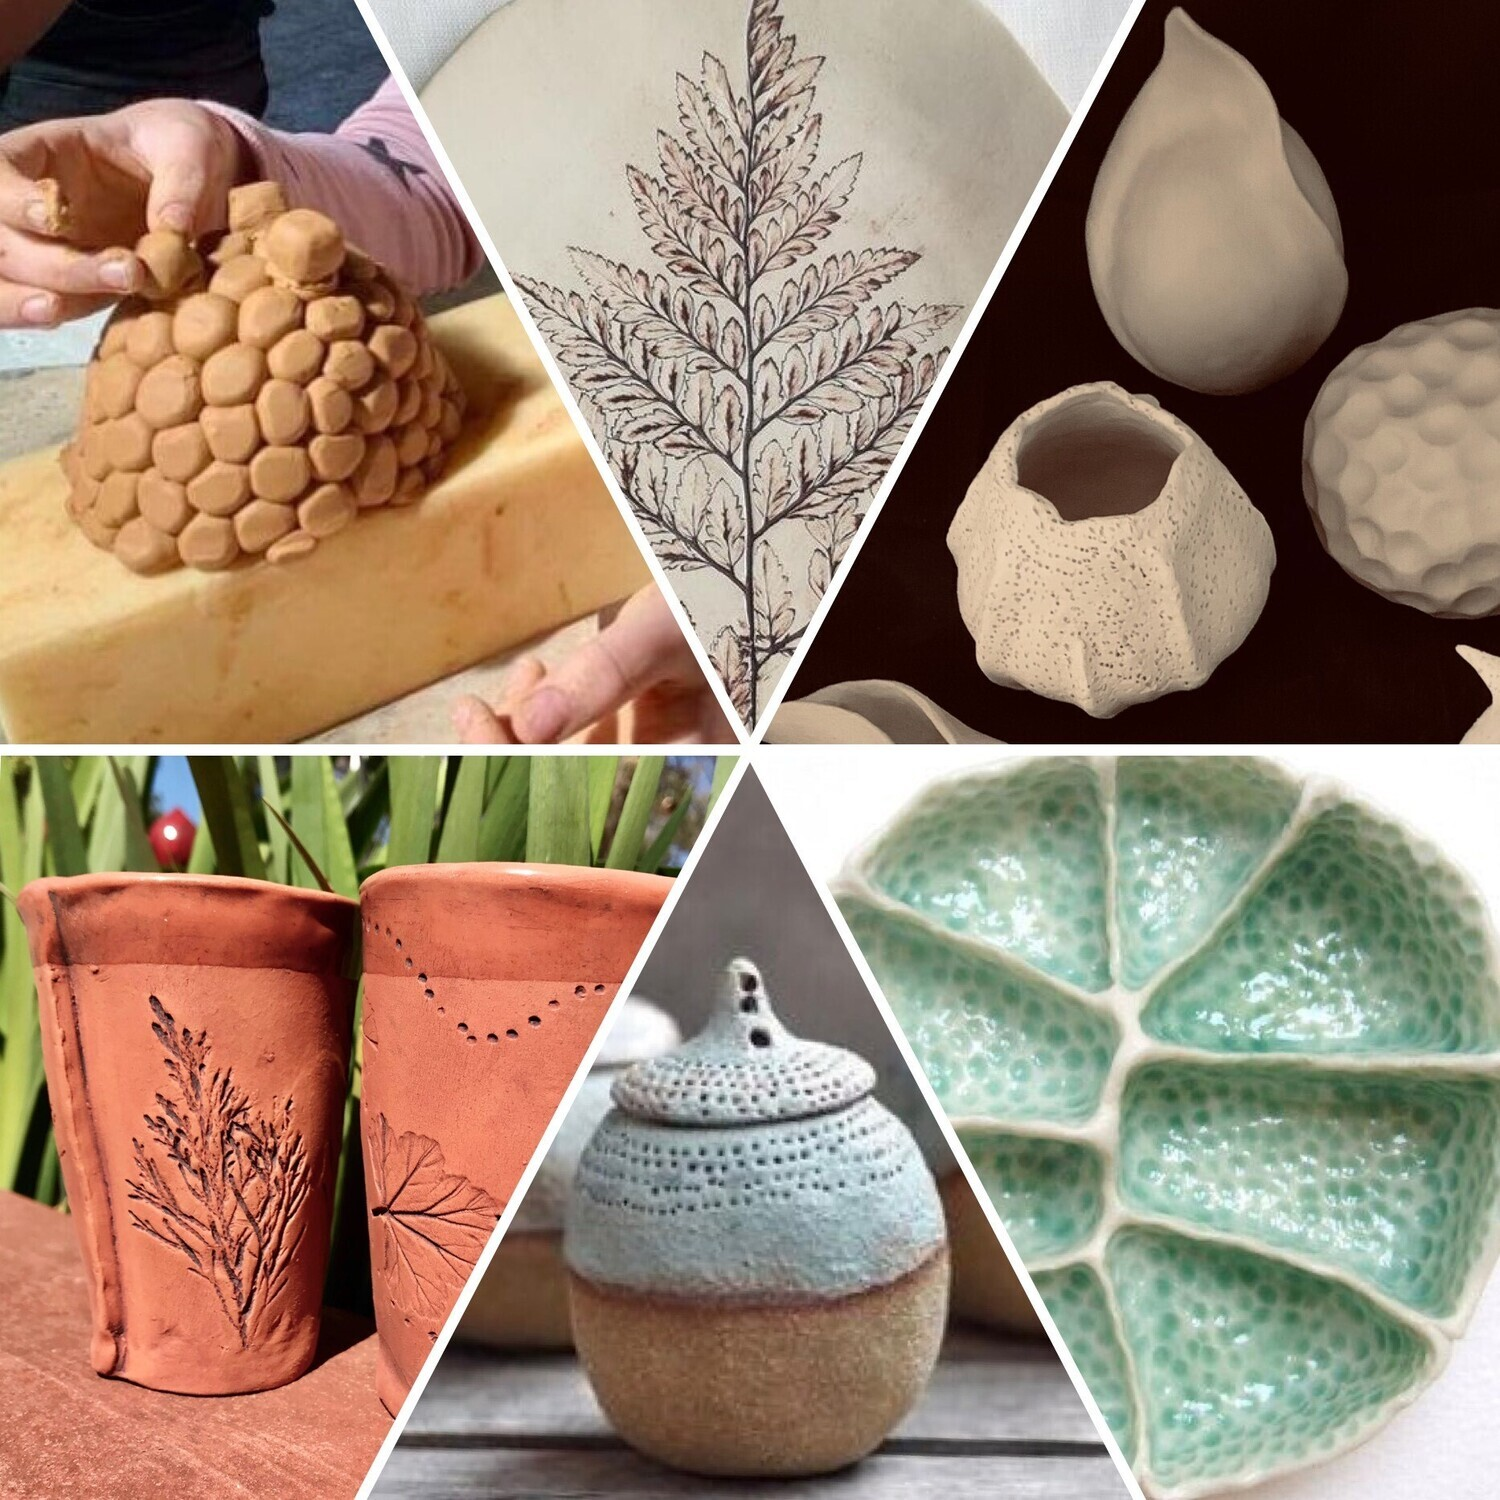 Hand building Pottery Workshop - 19th June 2-4pm